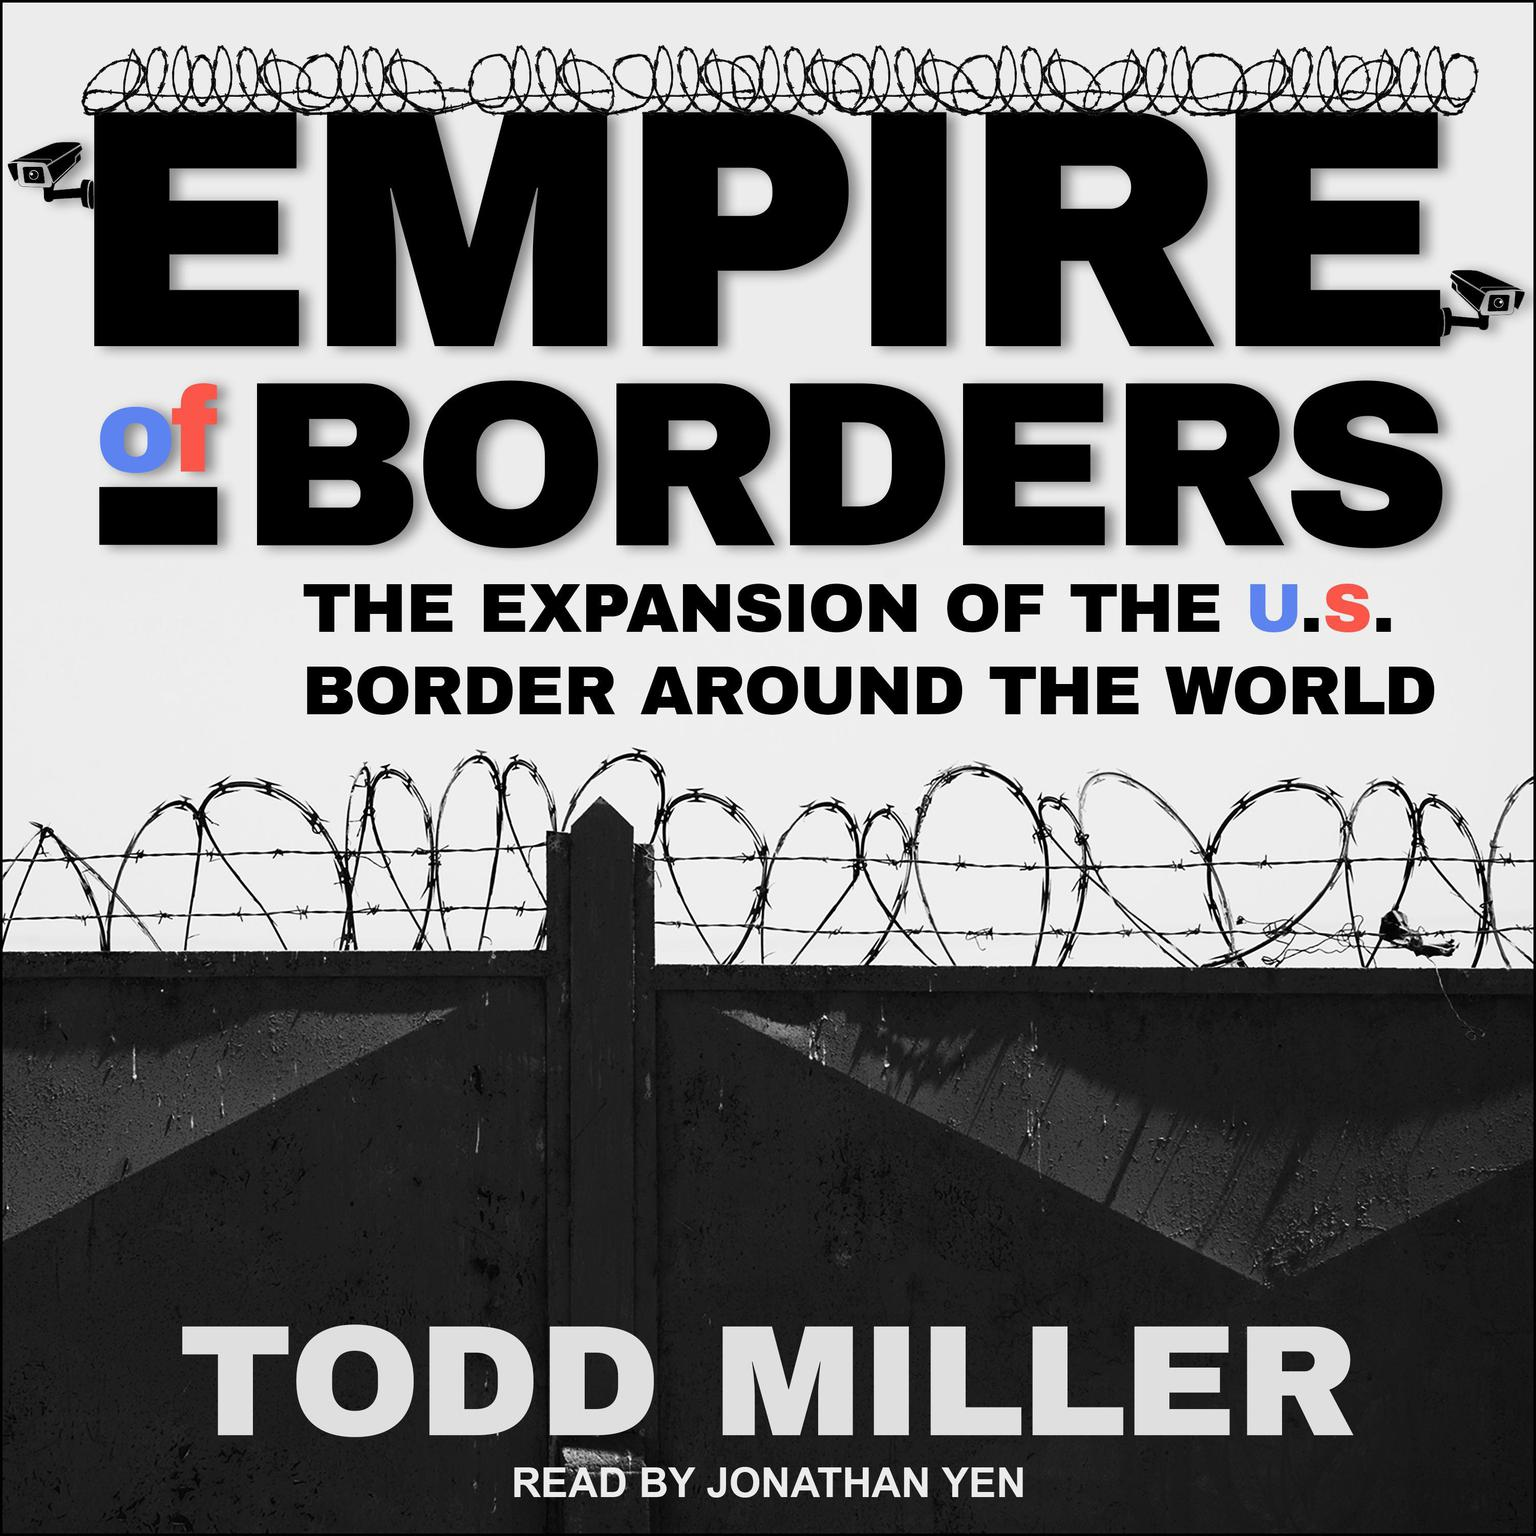 Printable Empire of Borders: How the US is Exporting its Border Around the World Audiobook Cover Art